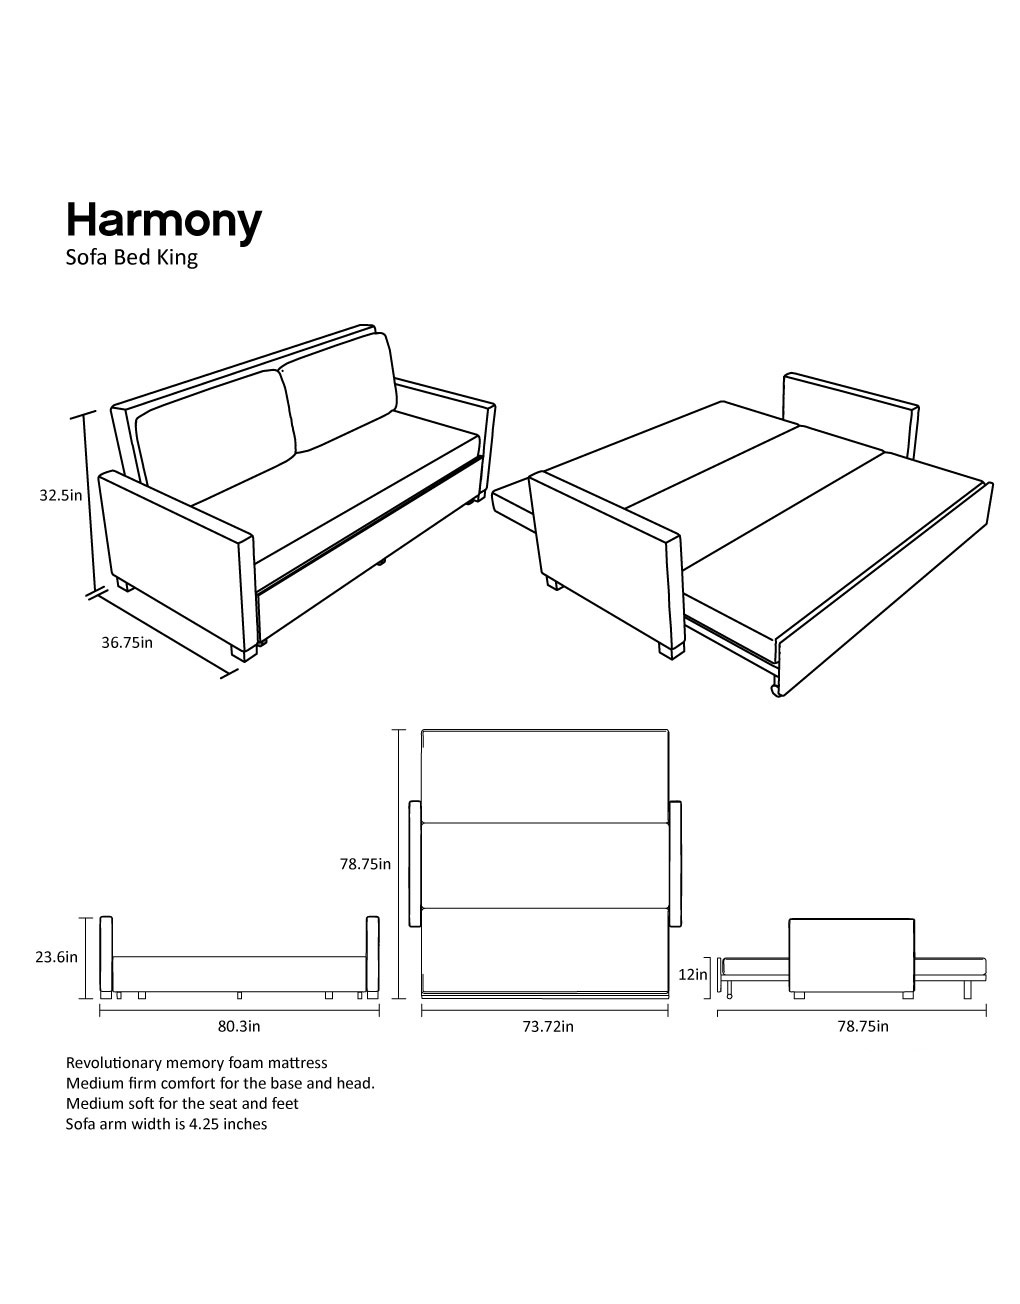 Harmony King Sofa Bed With Memory Foam Expand Furniture Folding Tables Smarter Wall Beds Space Savers